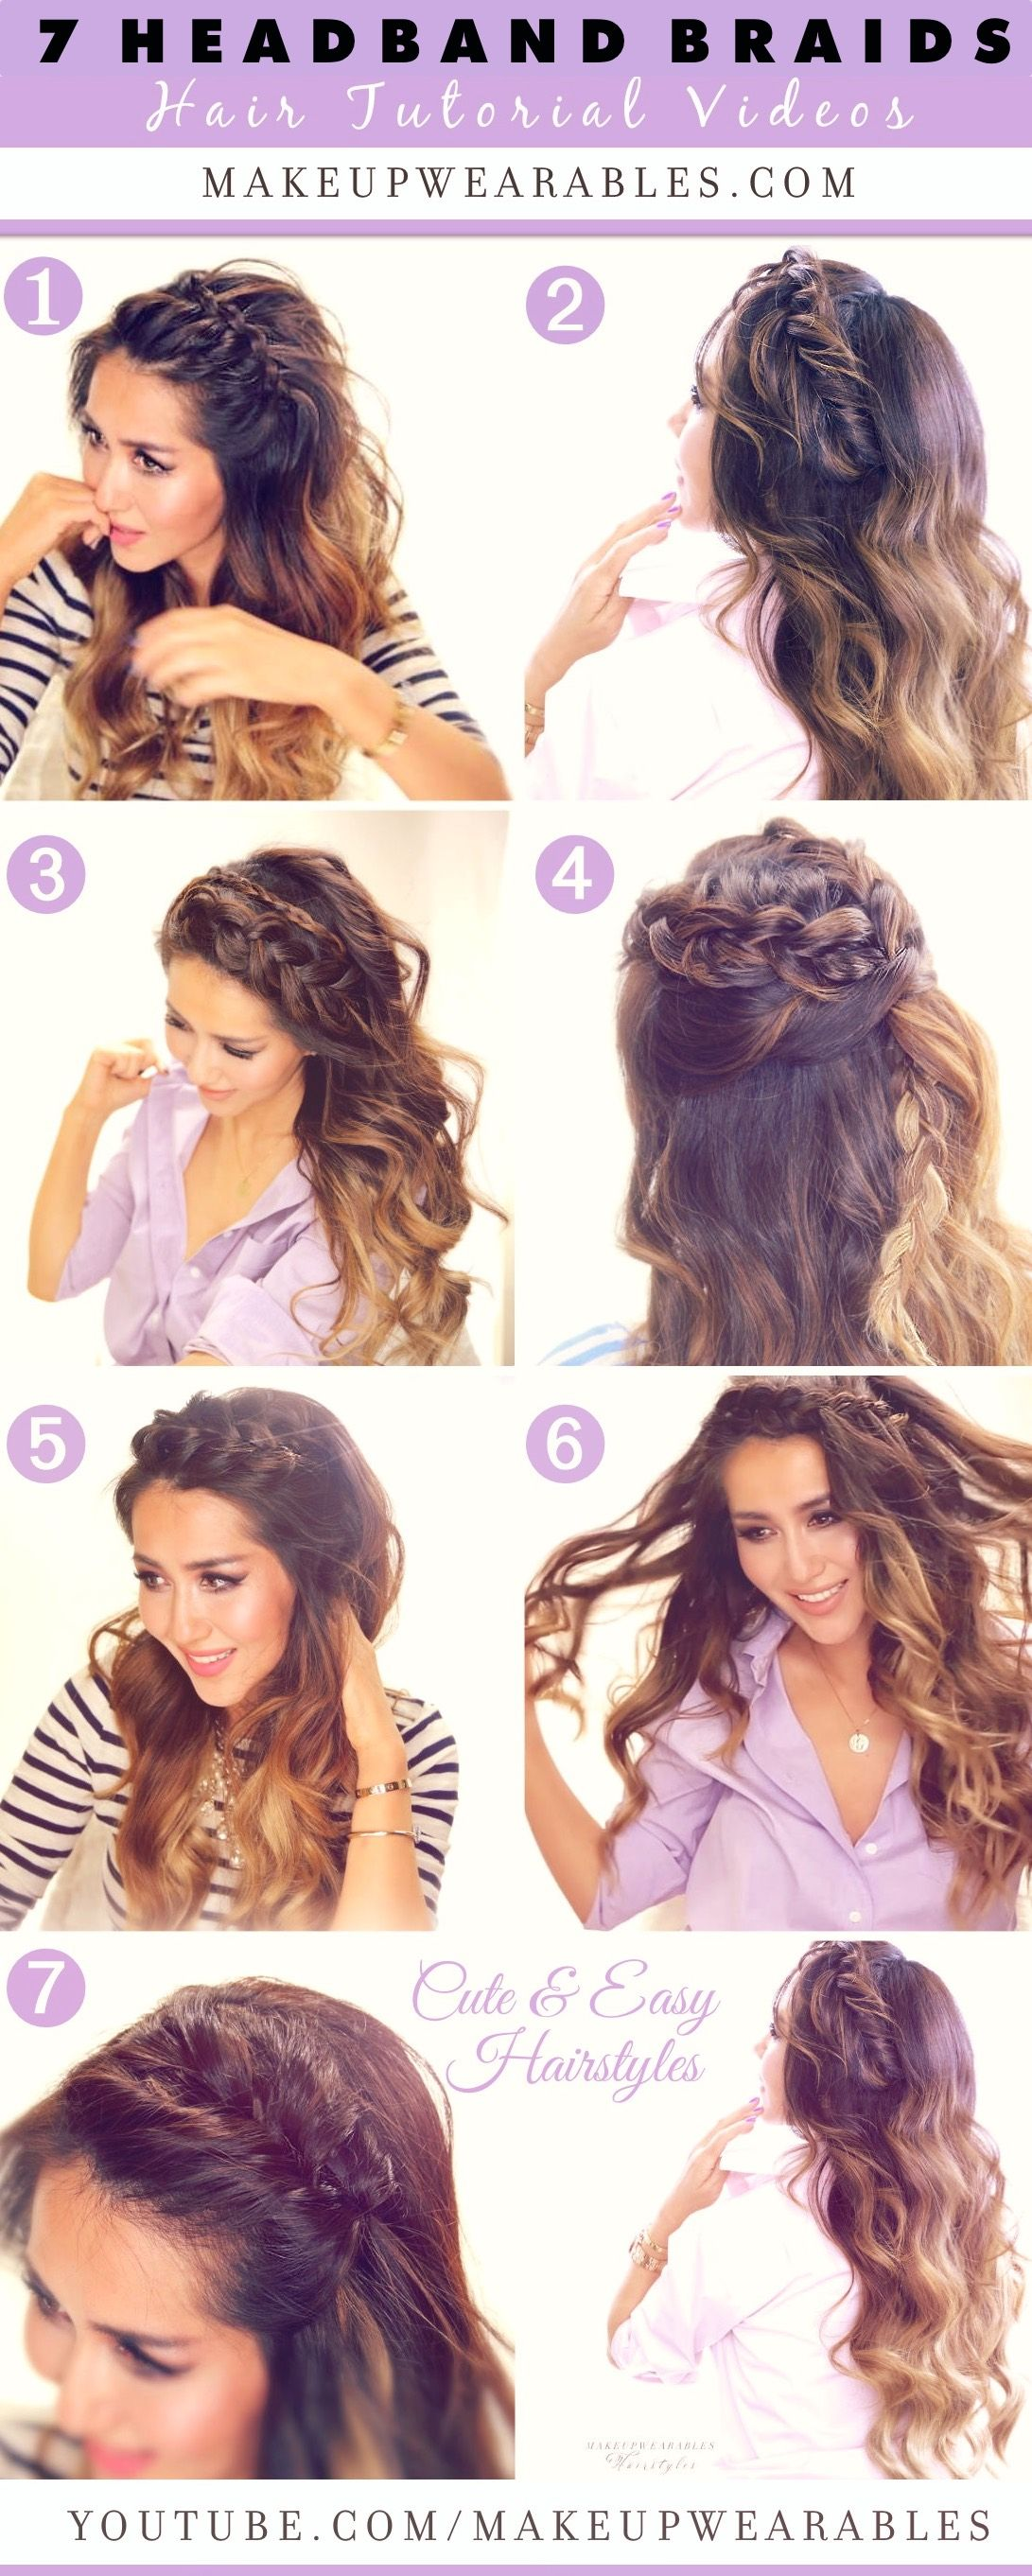 7 Cute & Easy Headband Braid Hairstyles to try in 2015